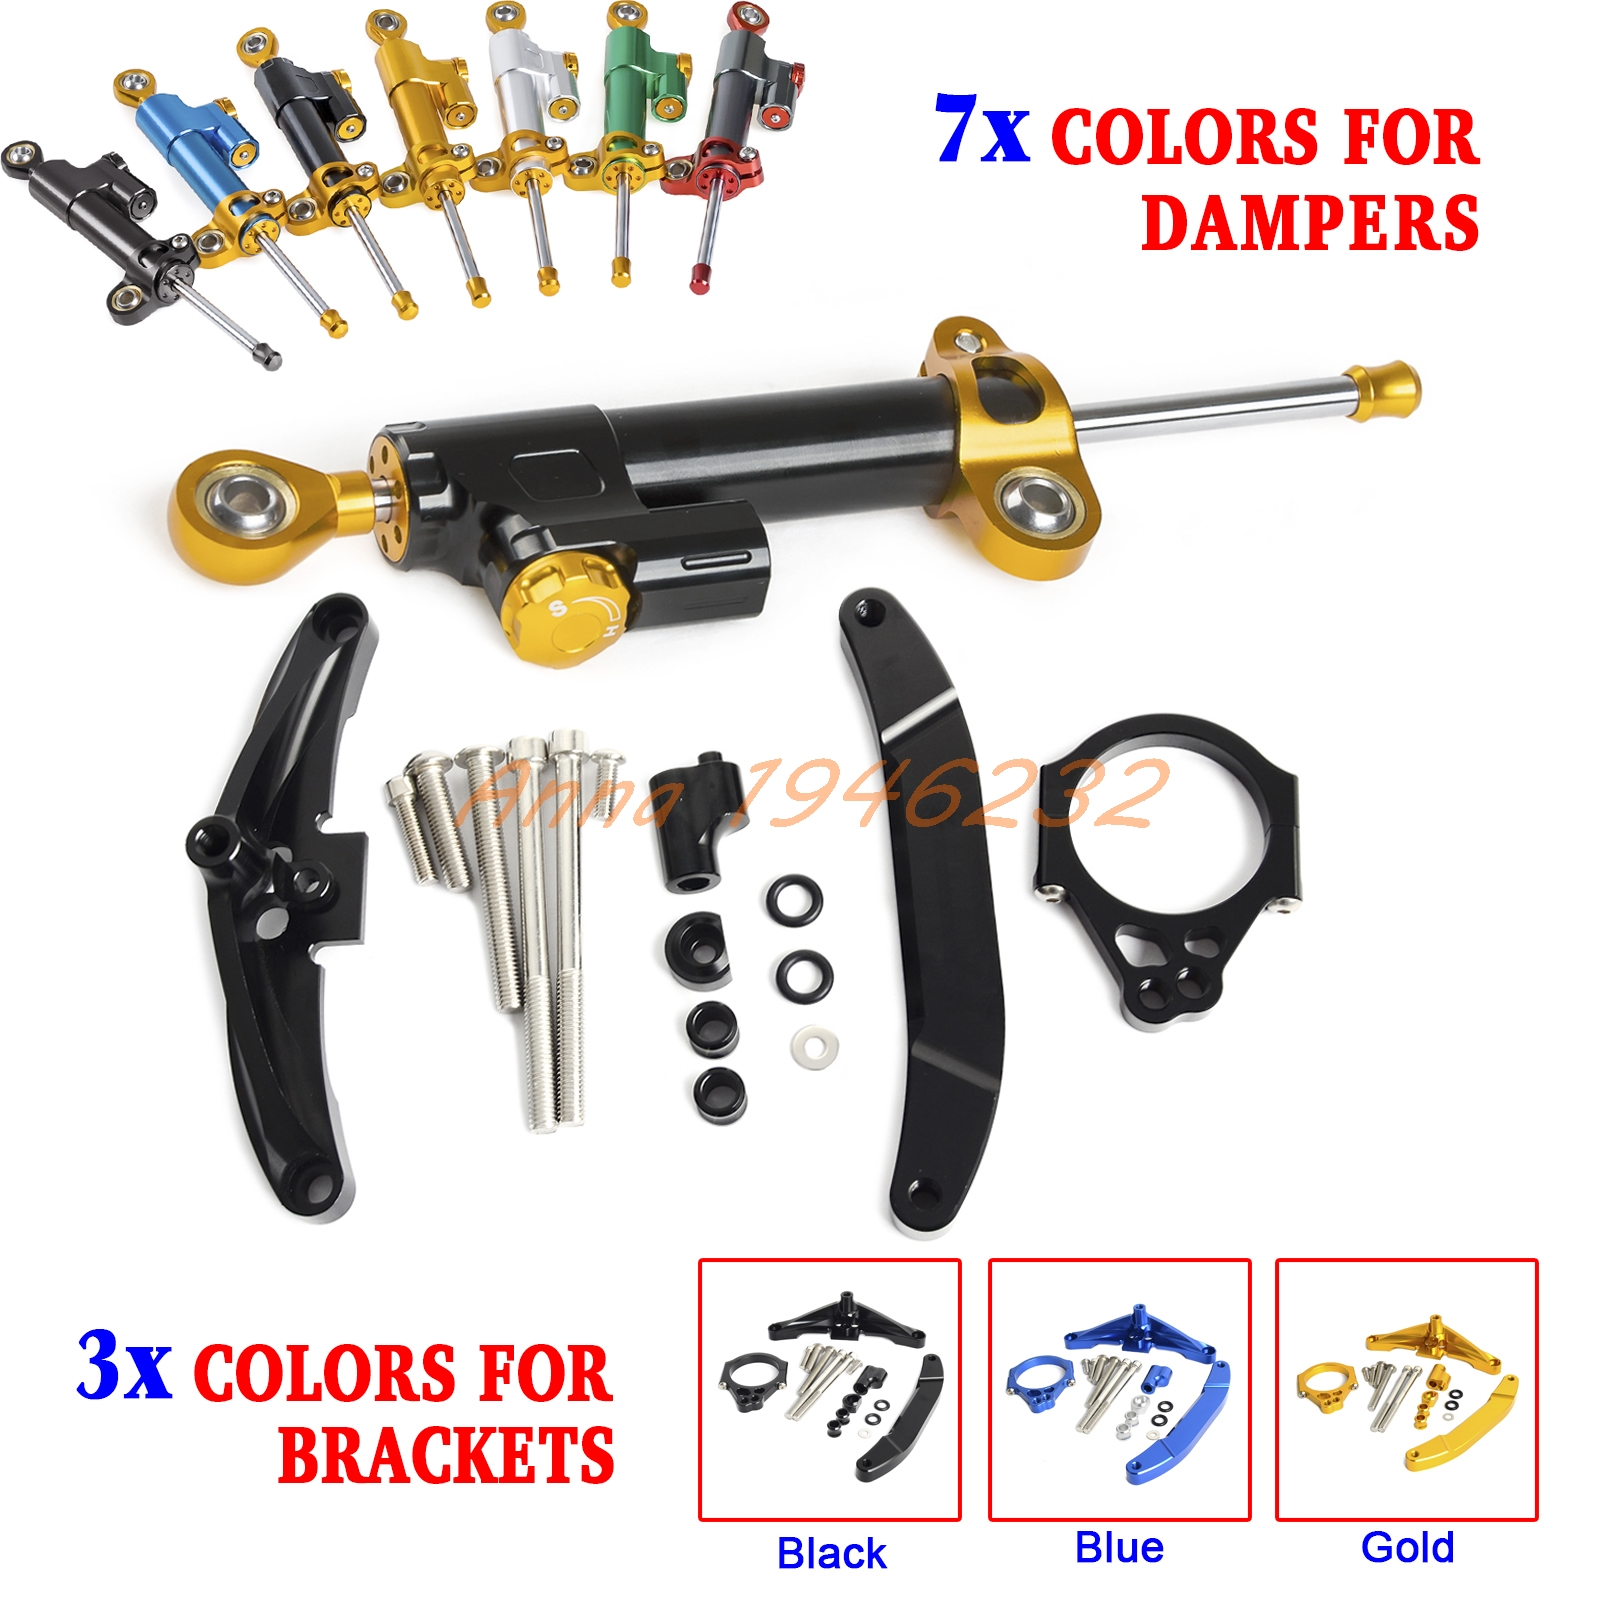 Motorcycle CNC Steering Damper Stabilizer & Bracket For Yamaha FZ1 FAZER  2006 2007 2008 2009 2010 -2015 motorcycle mounting bracket kit for yamaha fz1 fazer 2006 2015 2007 2008 2009 2010 2011 2012 2013 2014